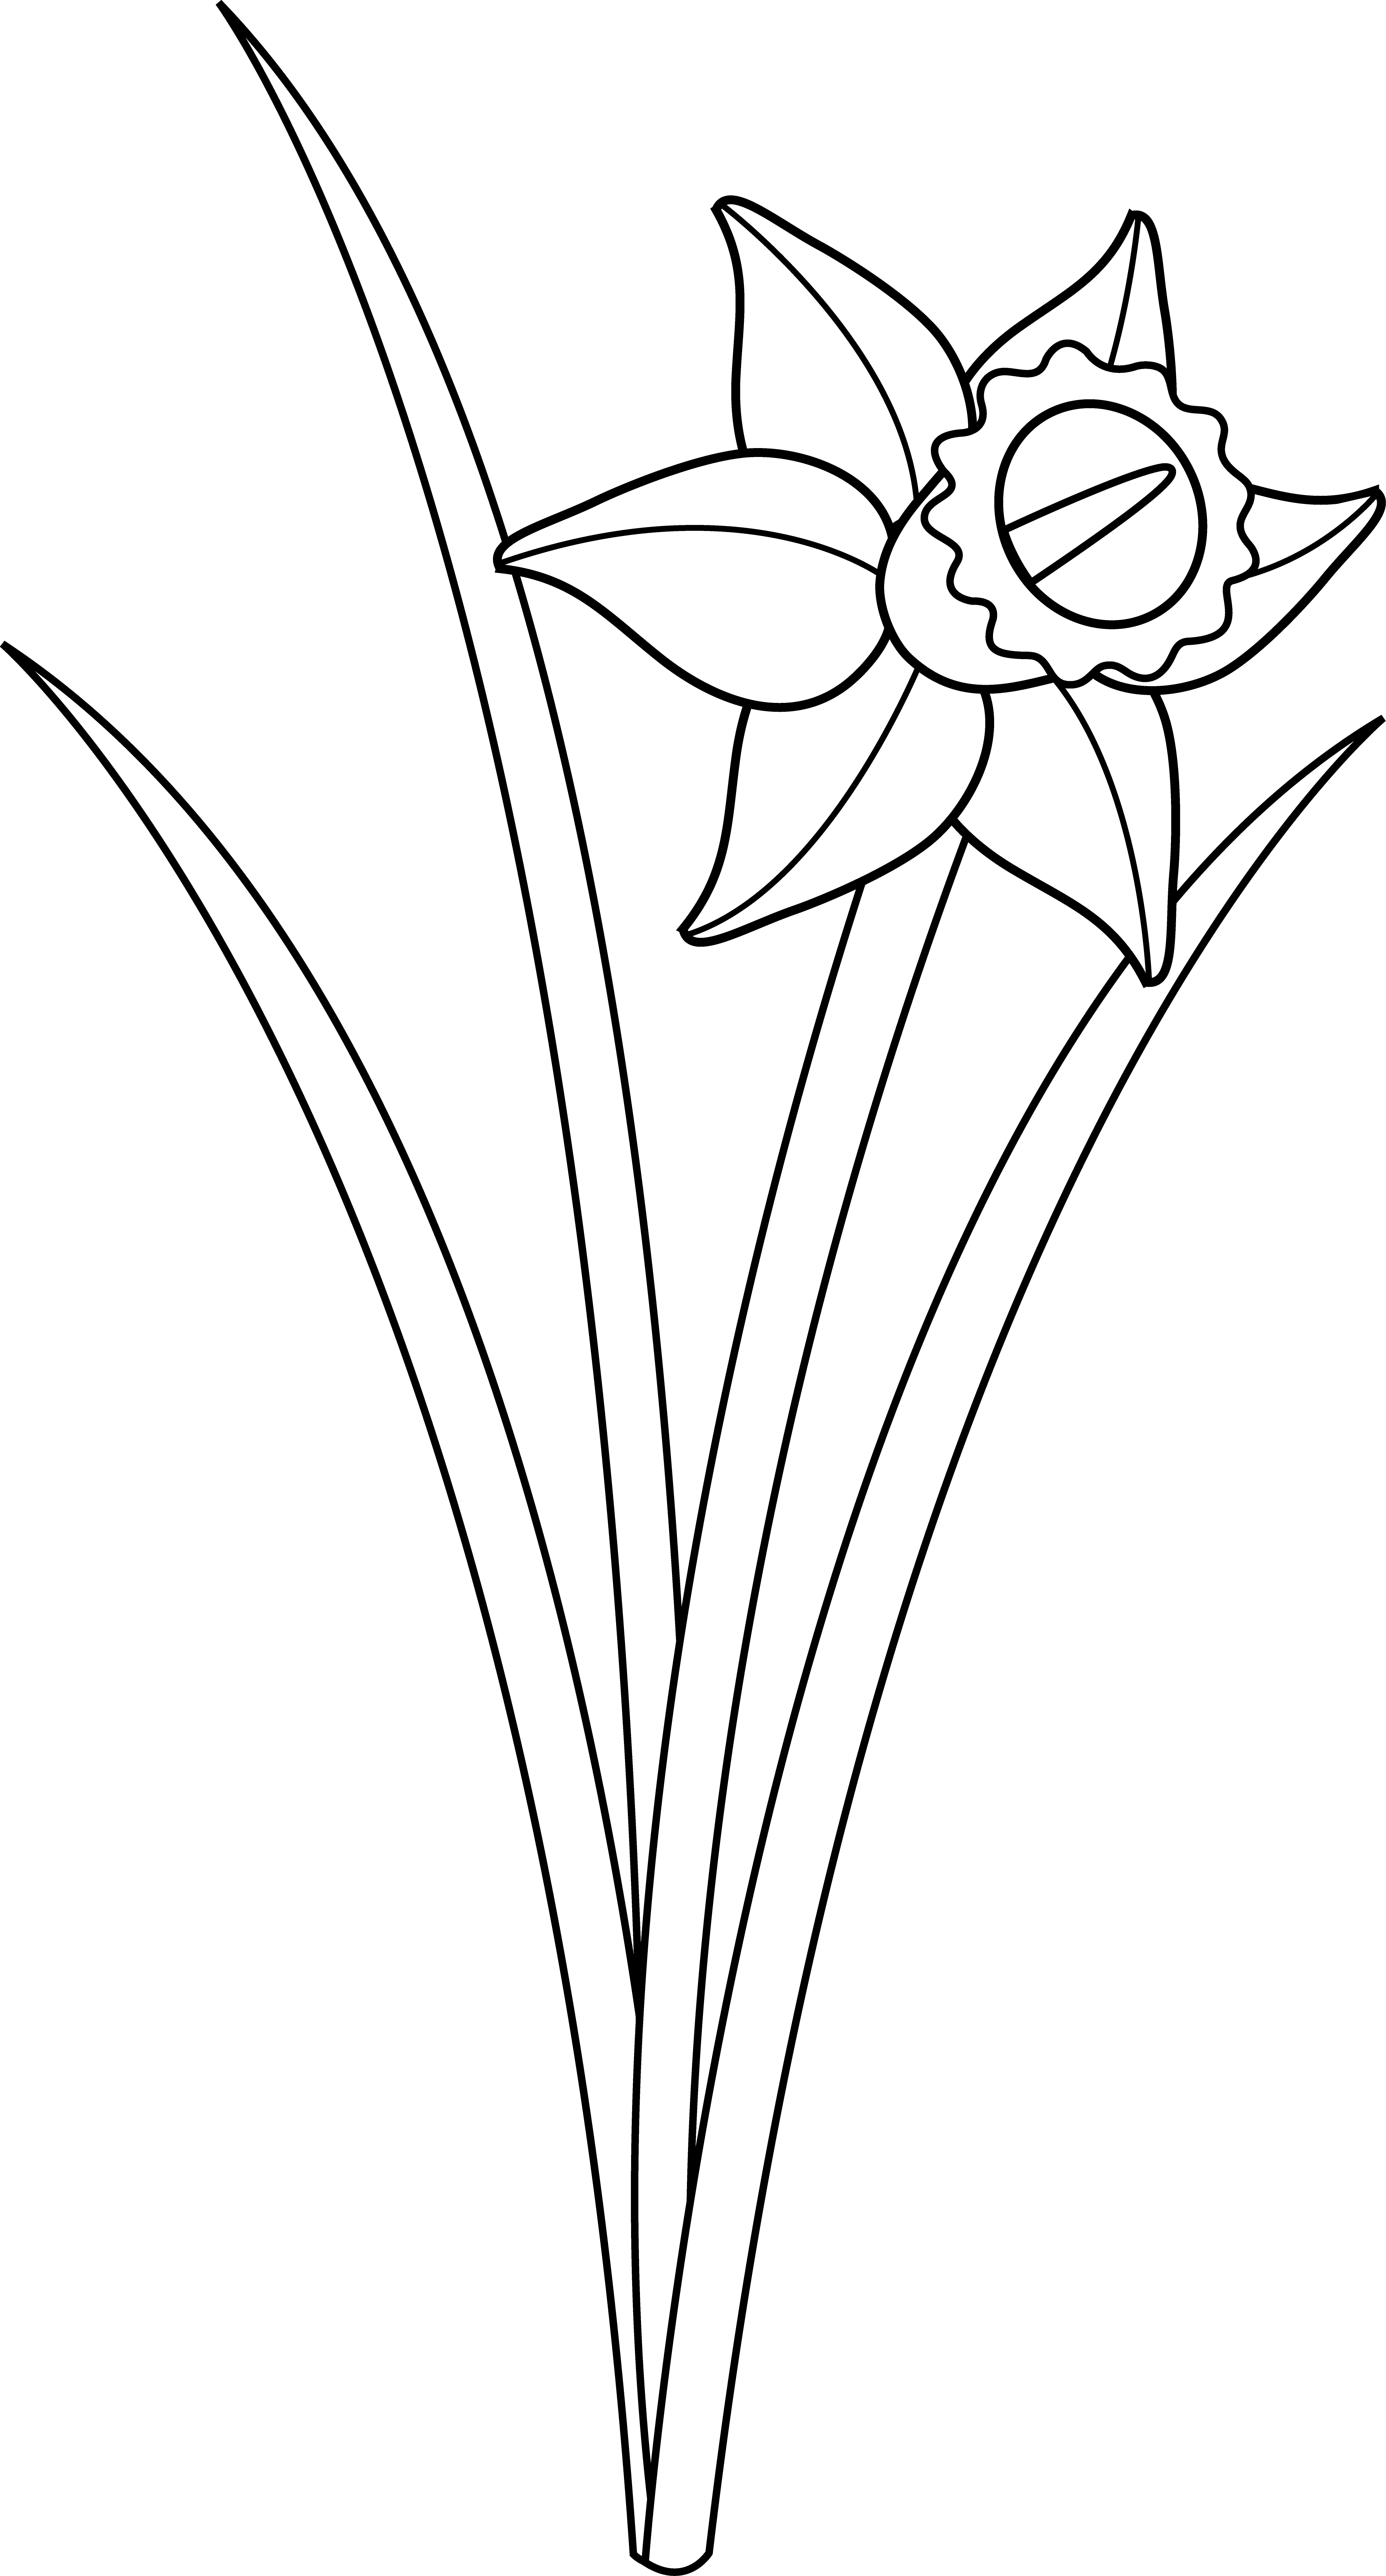 Flower outline clipart black and white clip art free download eletragesi: Daffodil Clipart Black And White Images clip art free download